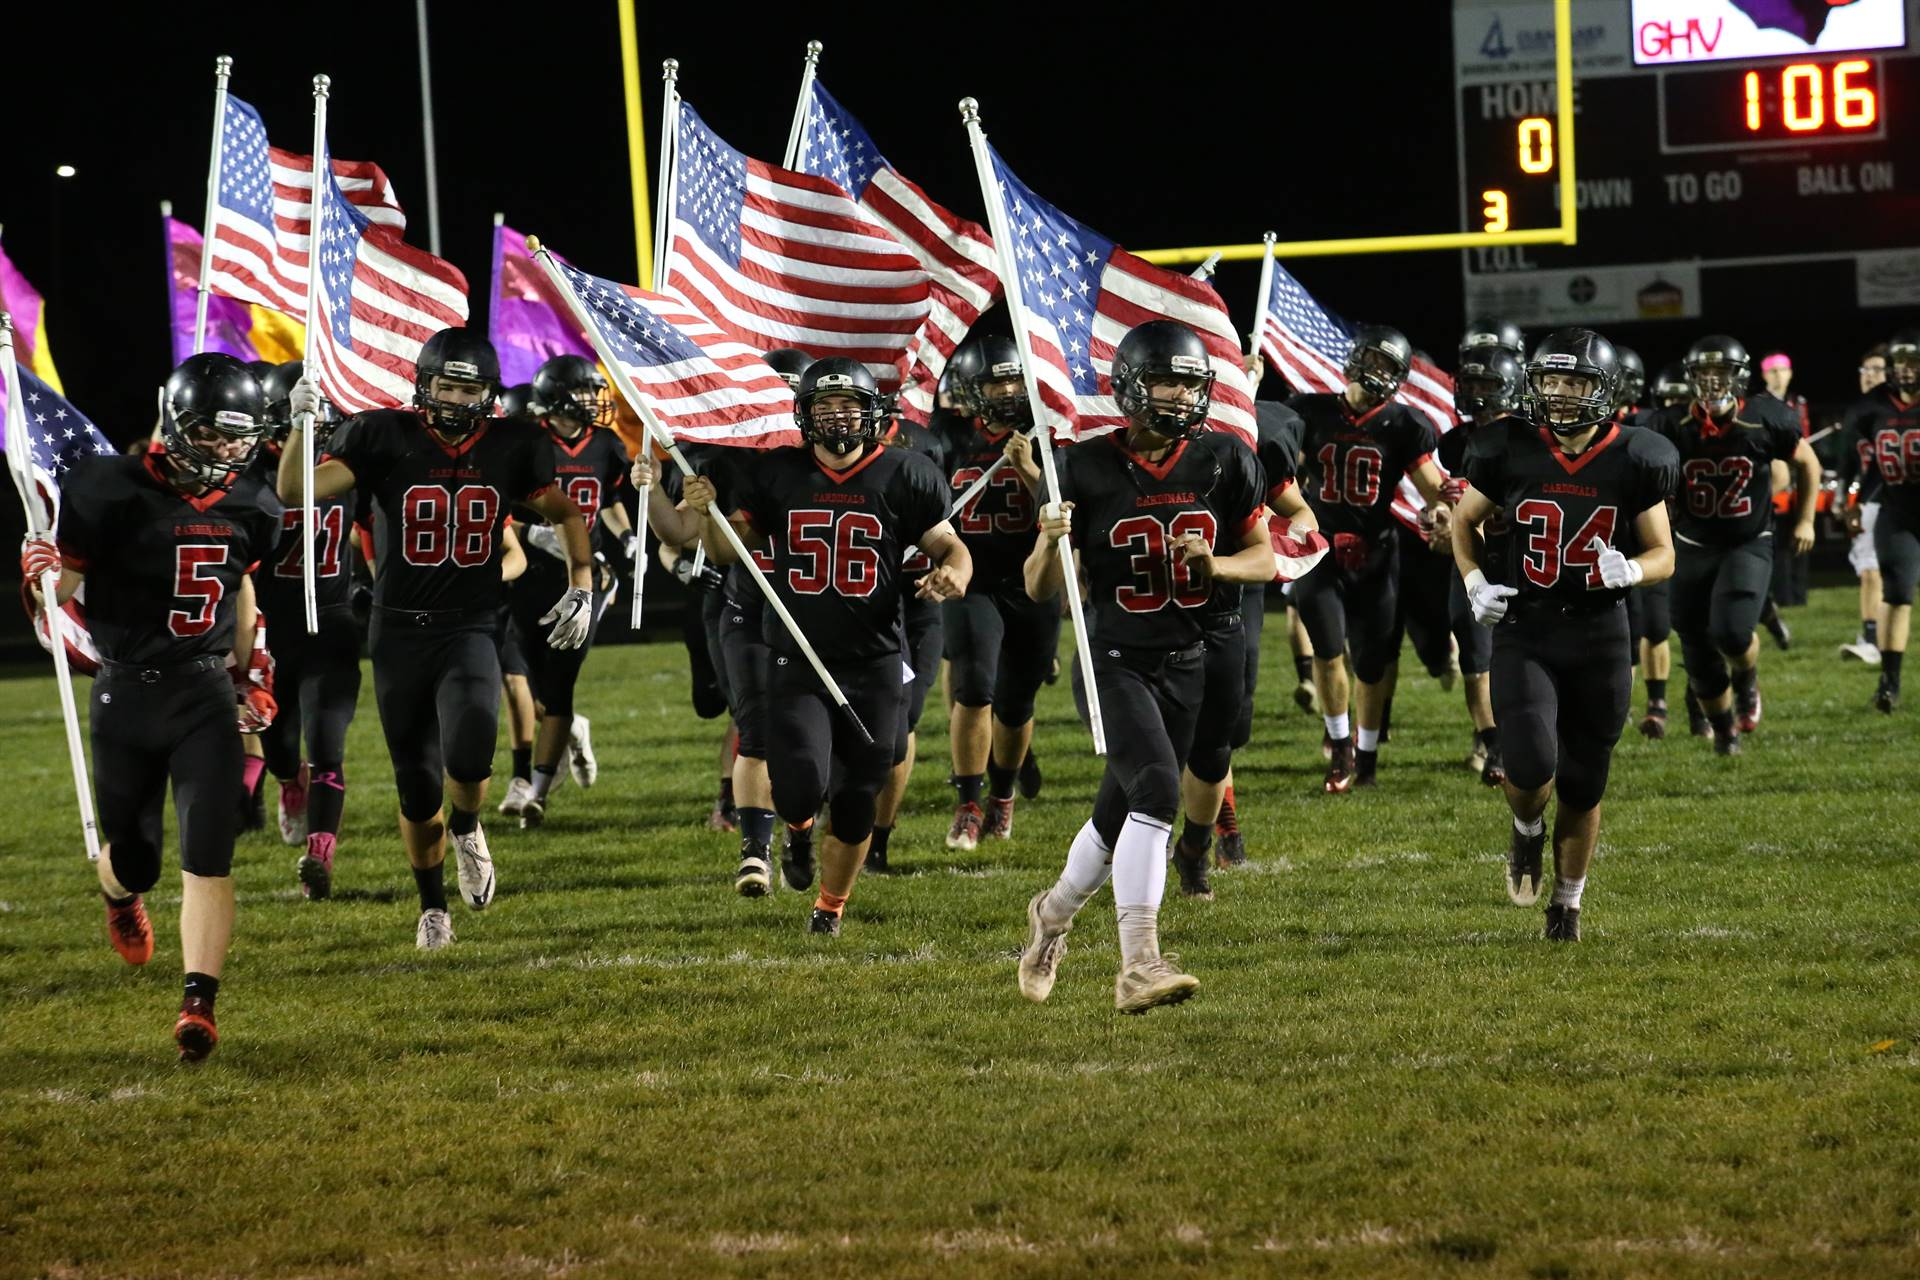 Football players running on field carrying American flags